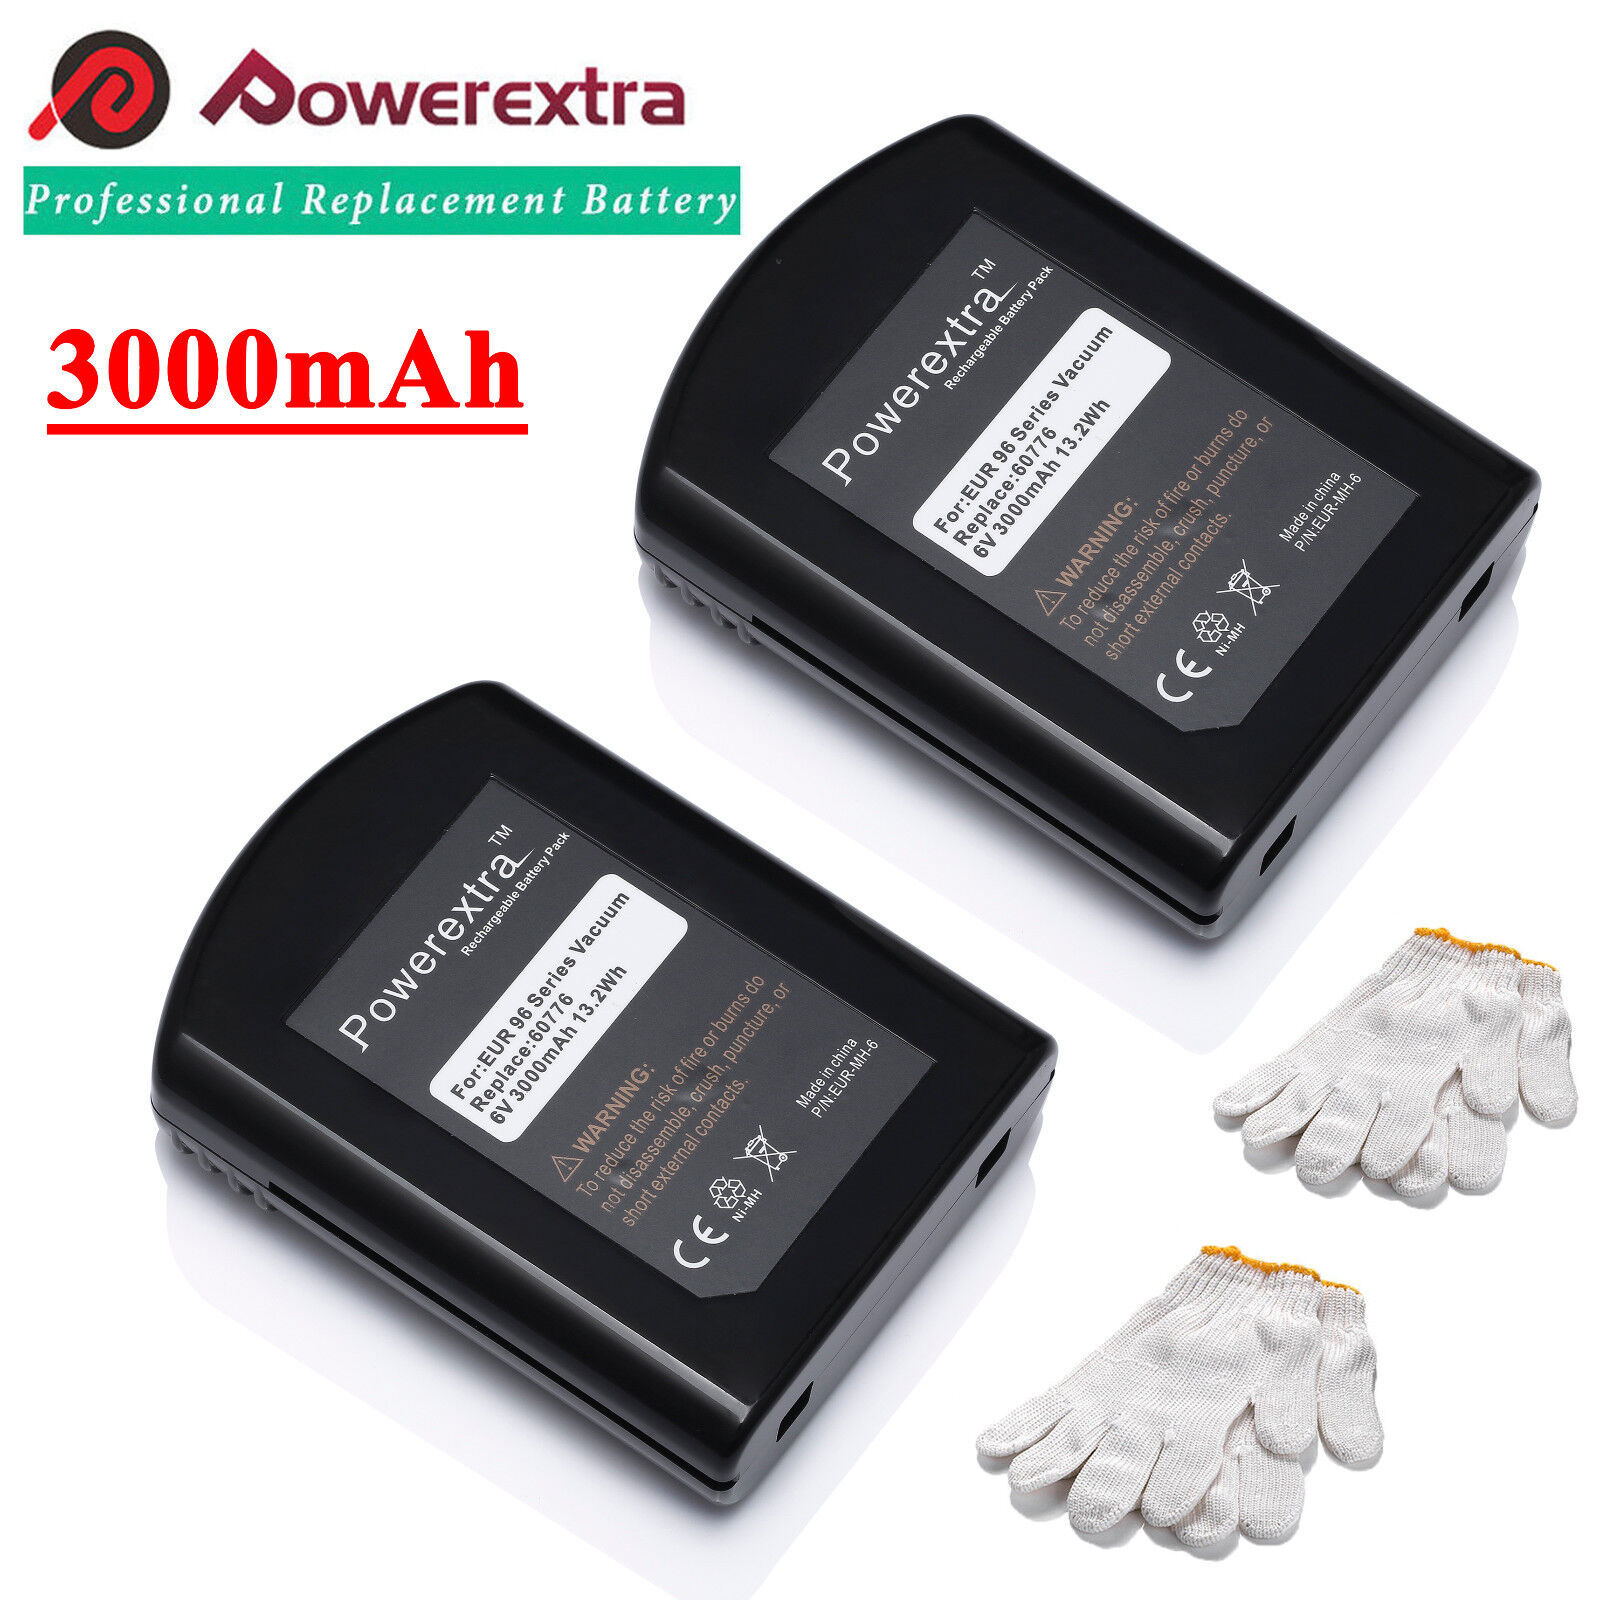 2 x 6V 3.0Ah Vacuum Battery 60776 For Eureka Quick Up 2-in-1